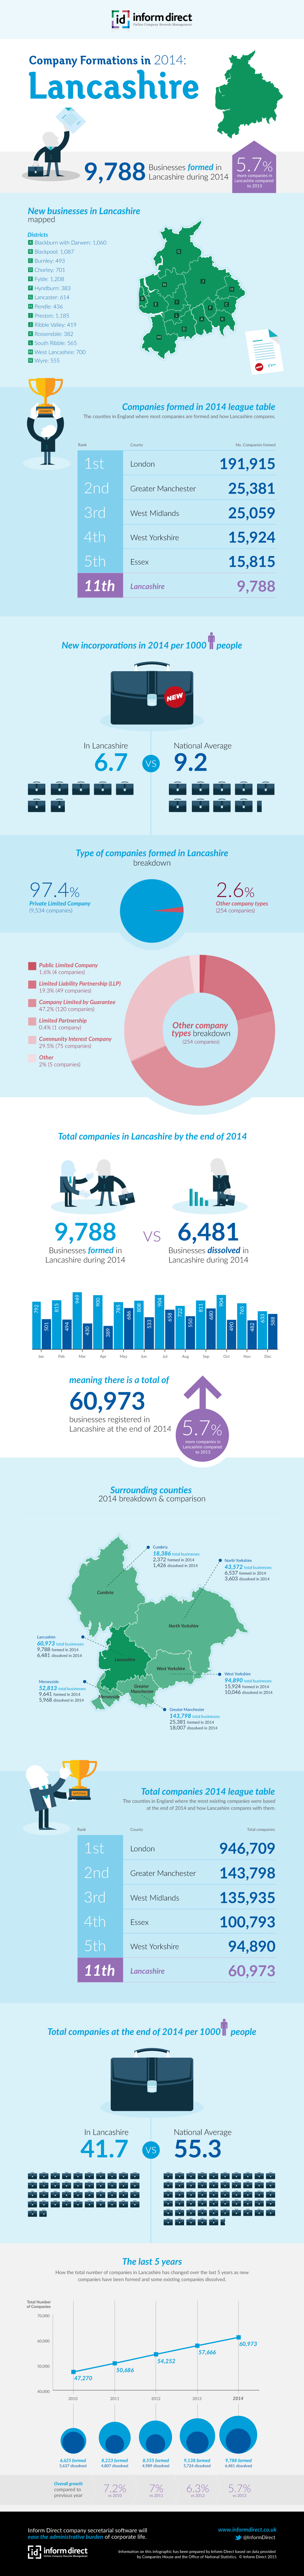 Inform Direct - Company Formations in Lancashire 2014 Infographic